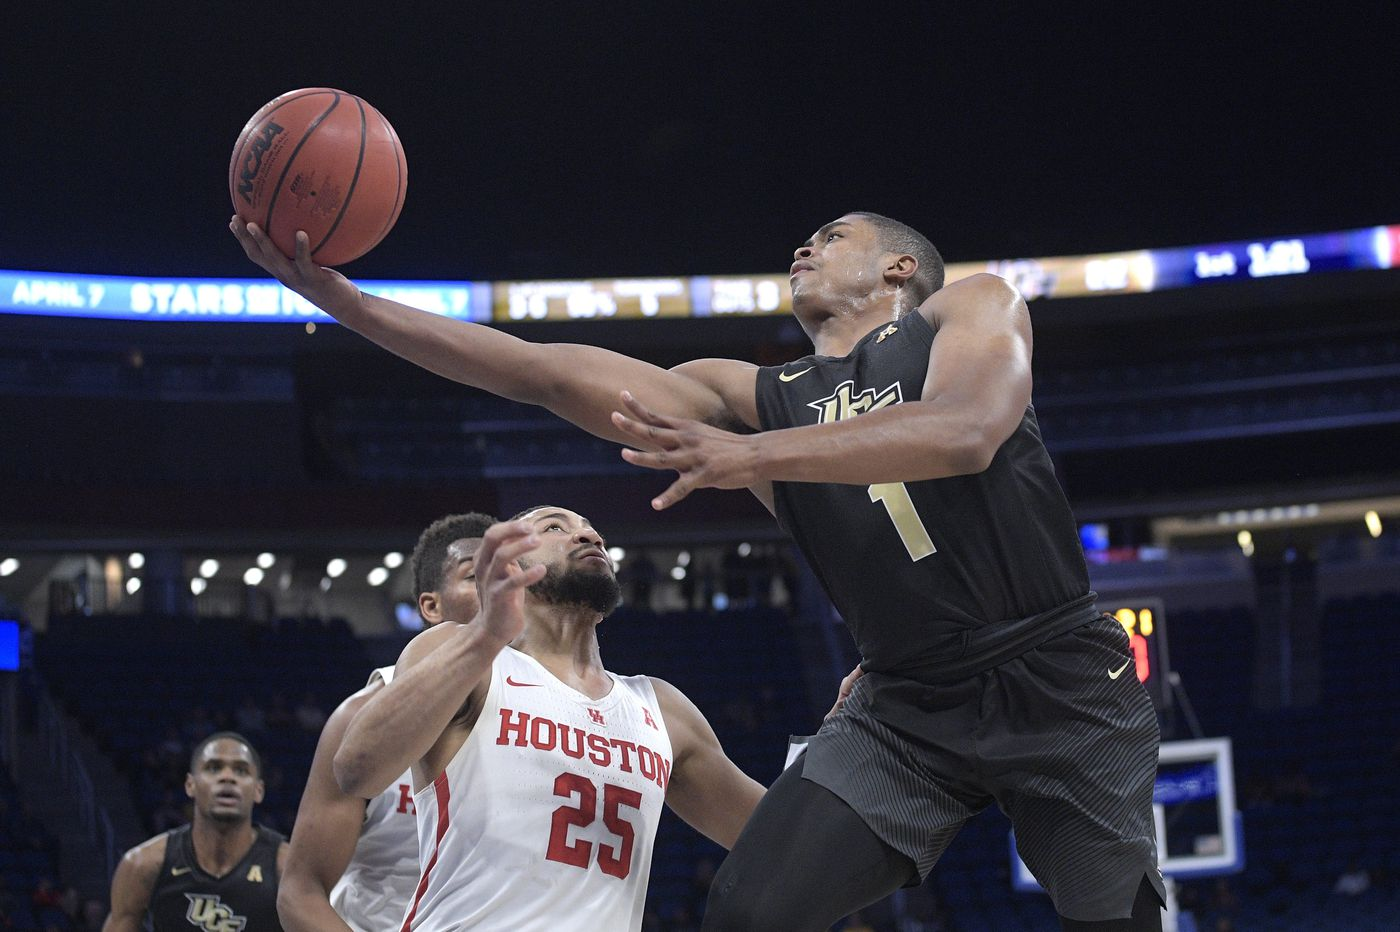 442abc6522d Tacko Fall, B.J. Taylor hope to lead Central Florida past Cincinnati,  Houston to top of conference ...